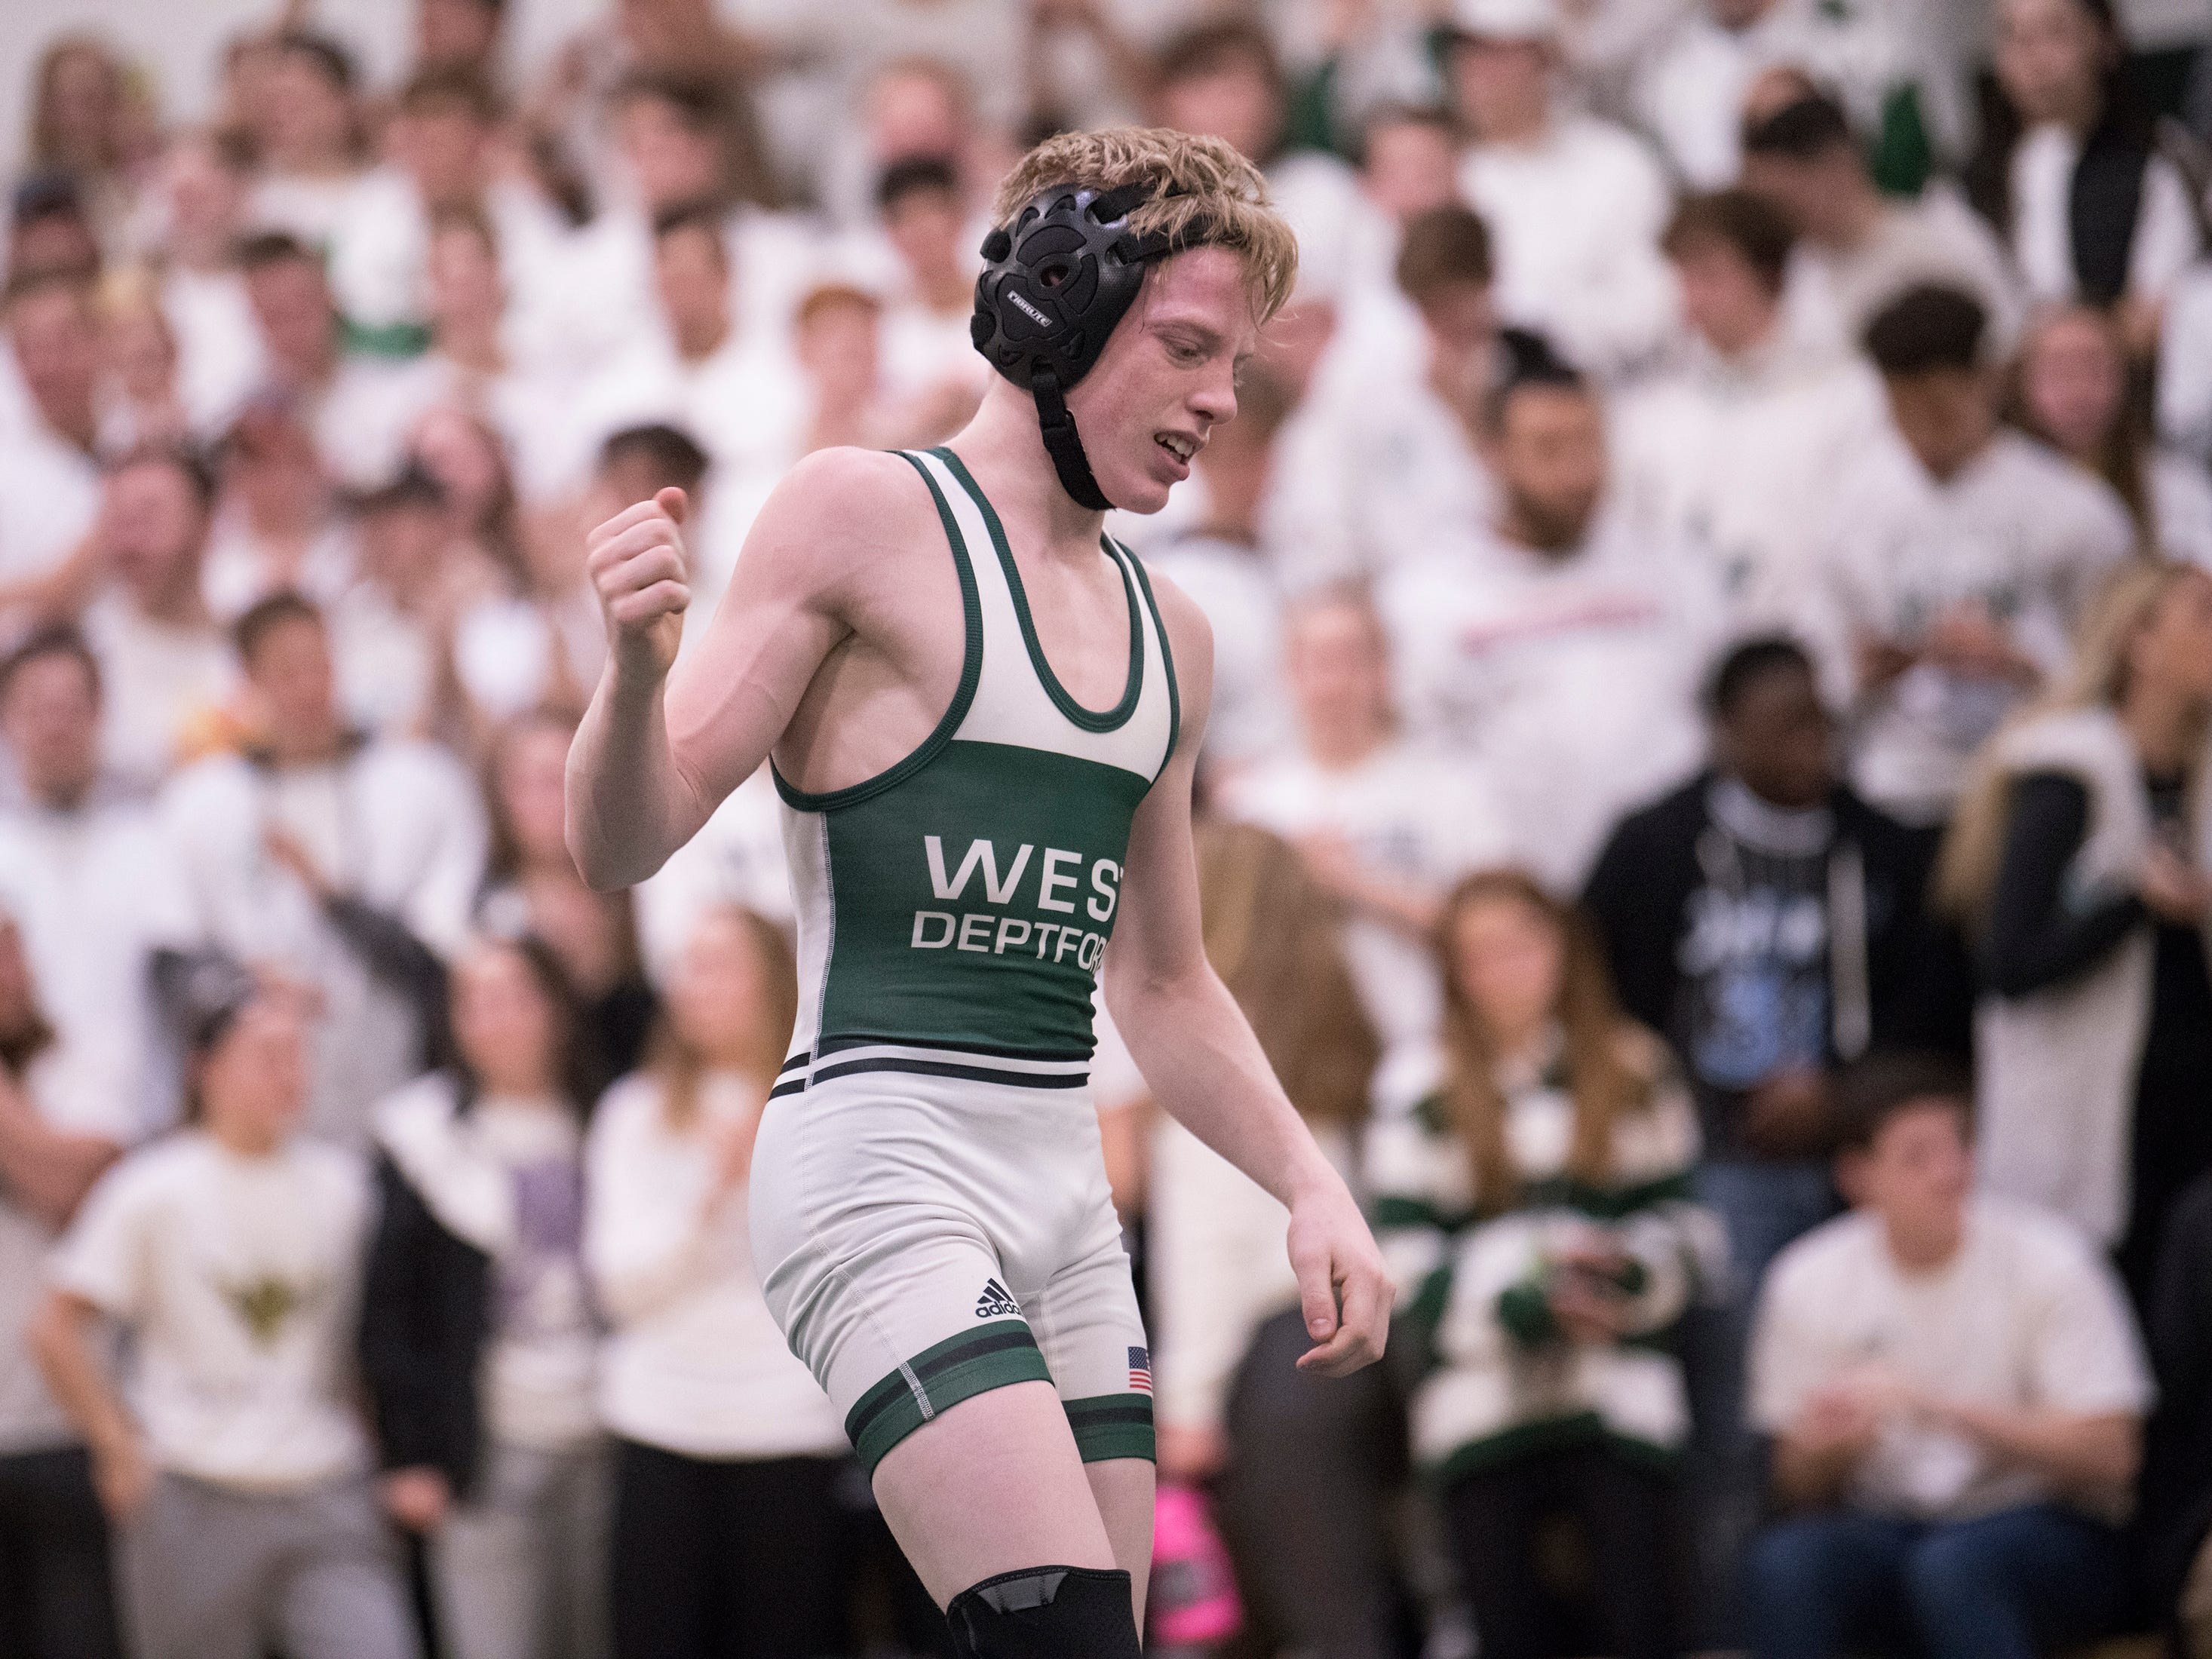 West Deptford defeated Haddonfield, 38-20, in the SJ Group 2 title meet held at West Deptford High School on Friday, February 8, 2019.